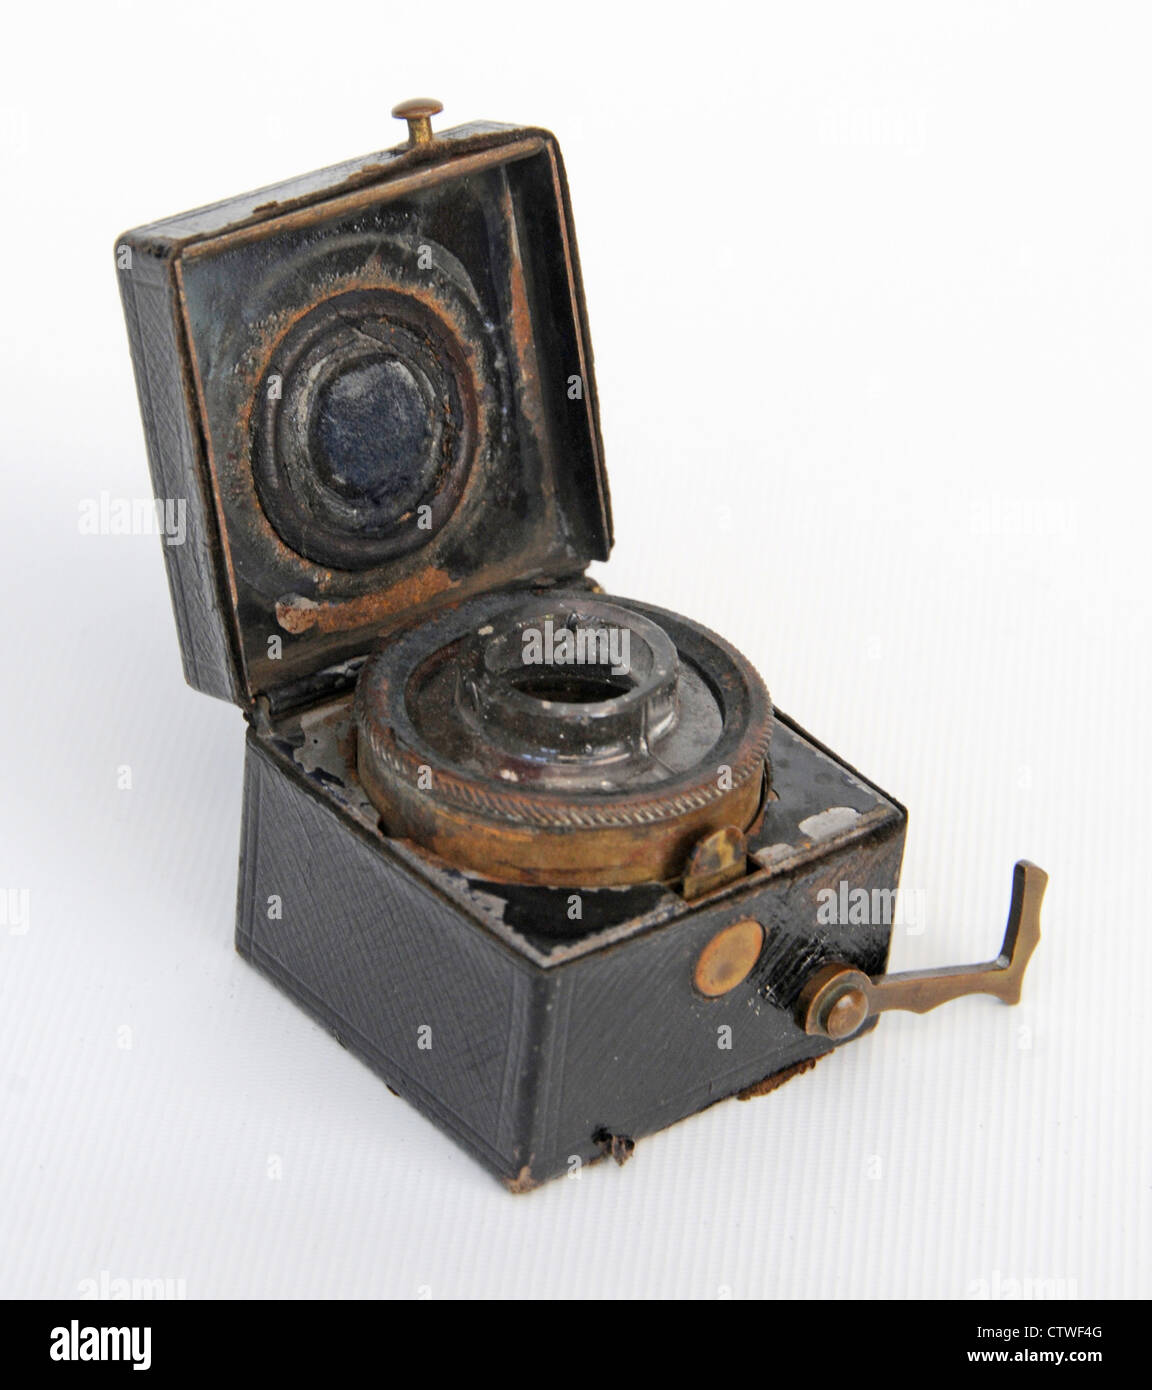 Antique inkwell ink pot traveling trenches - Stock Image